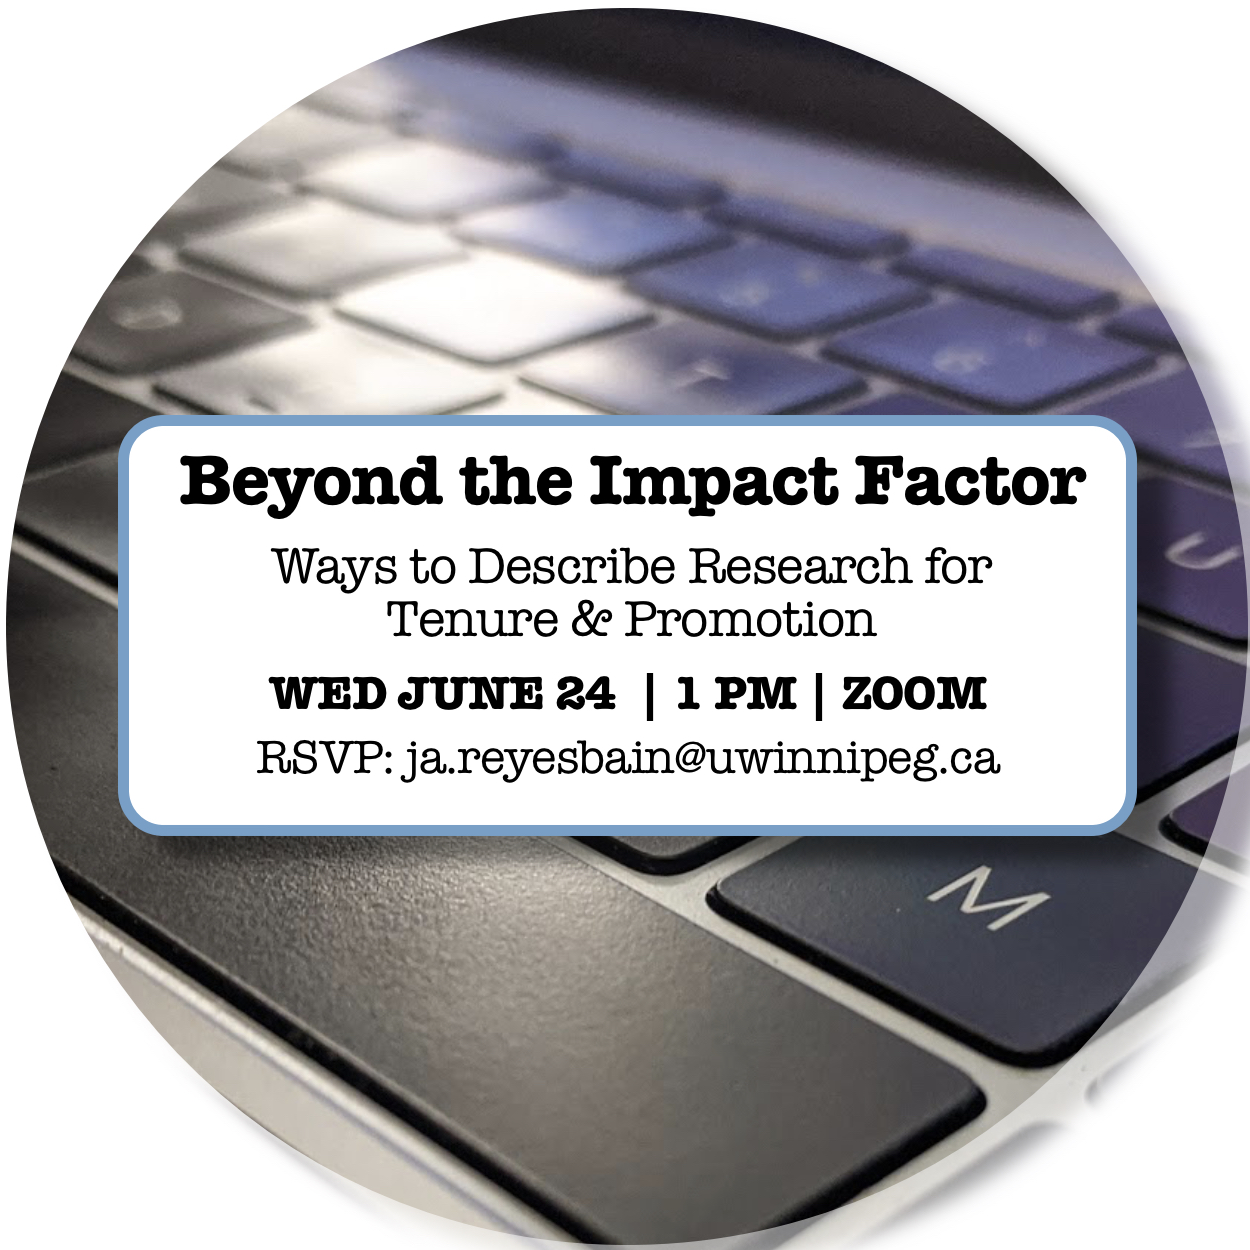 Graphic Text: Beyond the Impact Factor